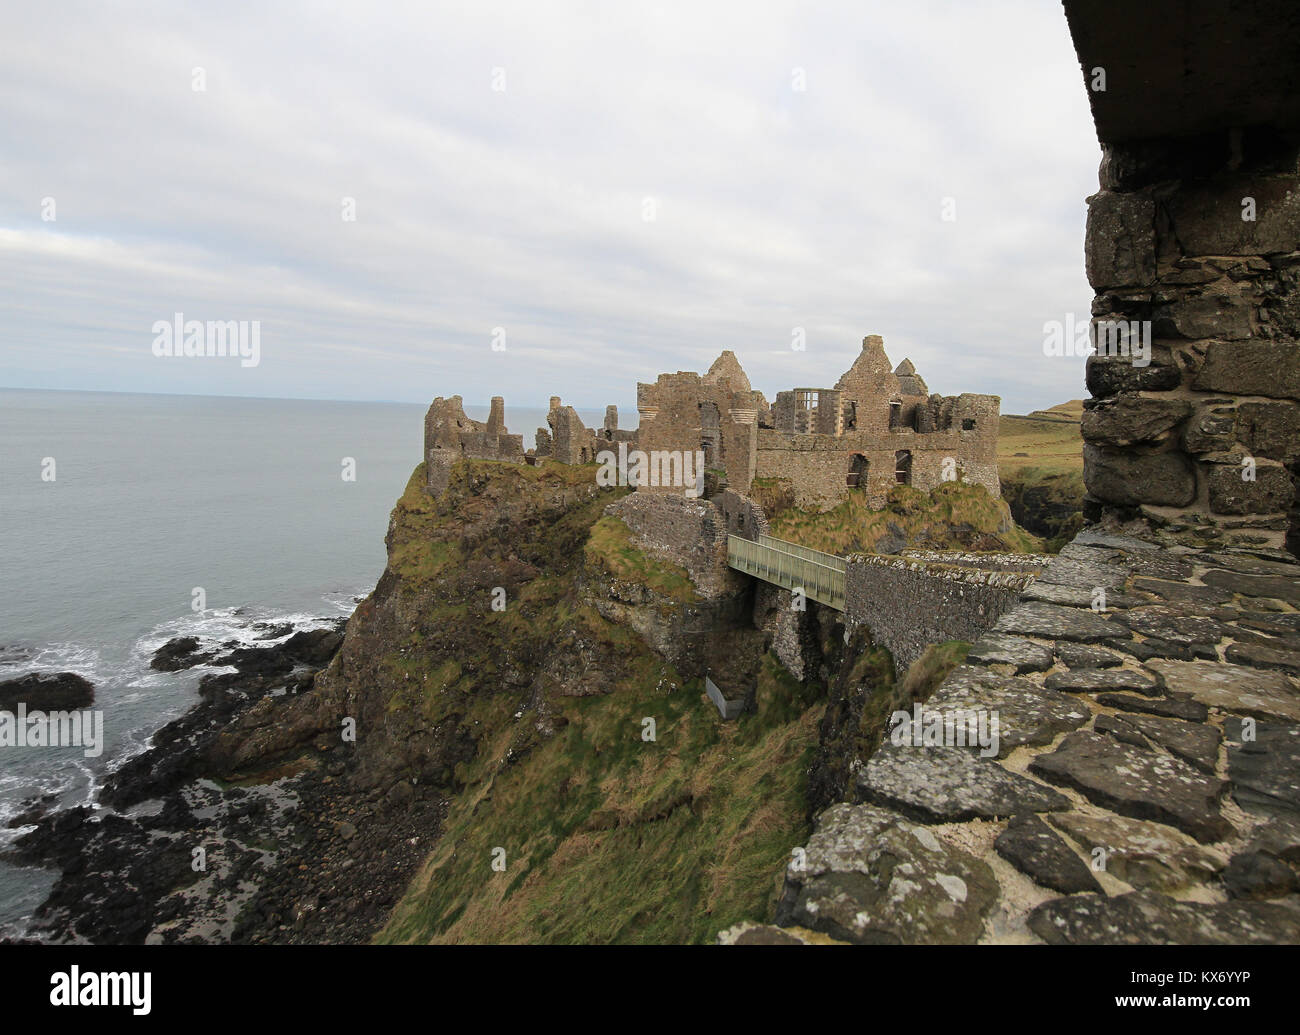 Pyke Castle Location High Resolution Stock Photography And Images Alamy